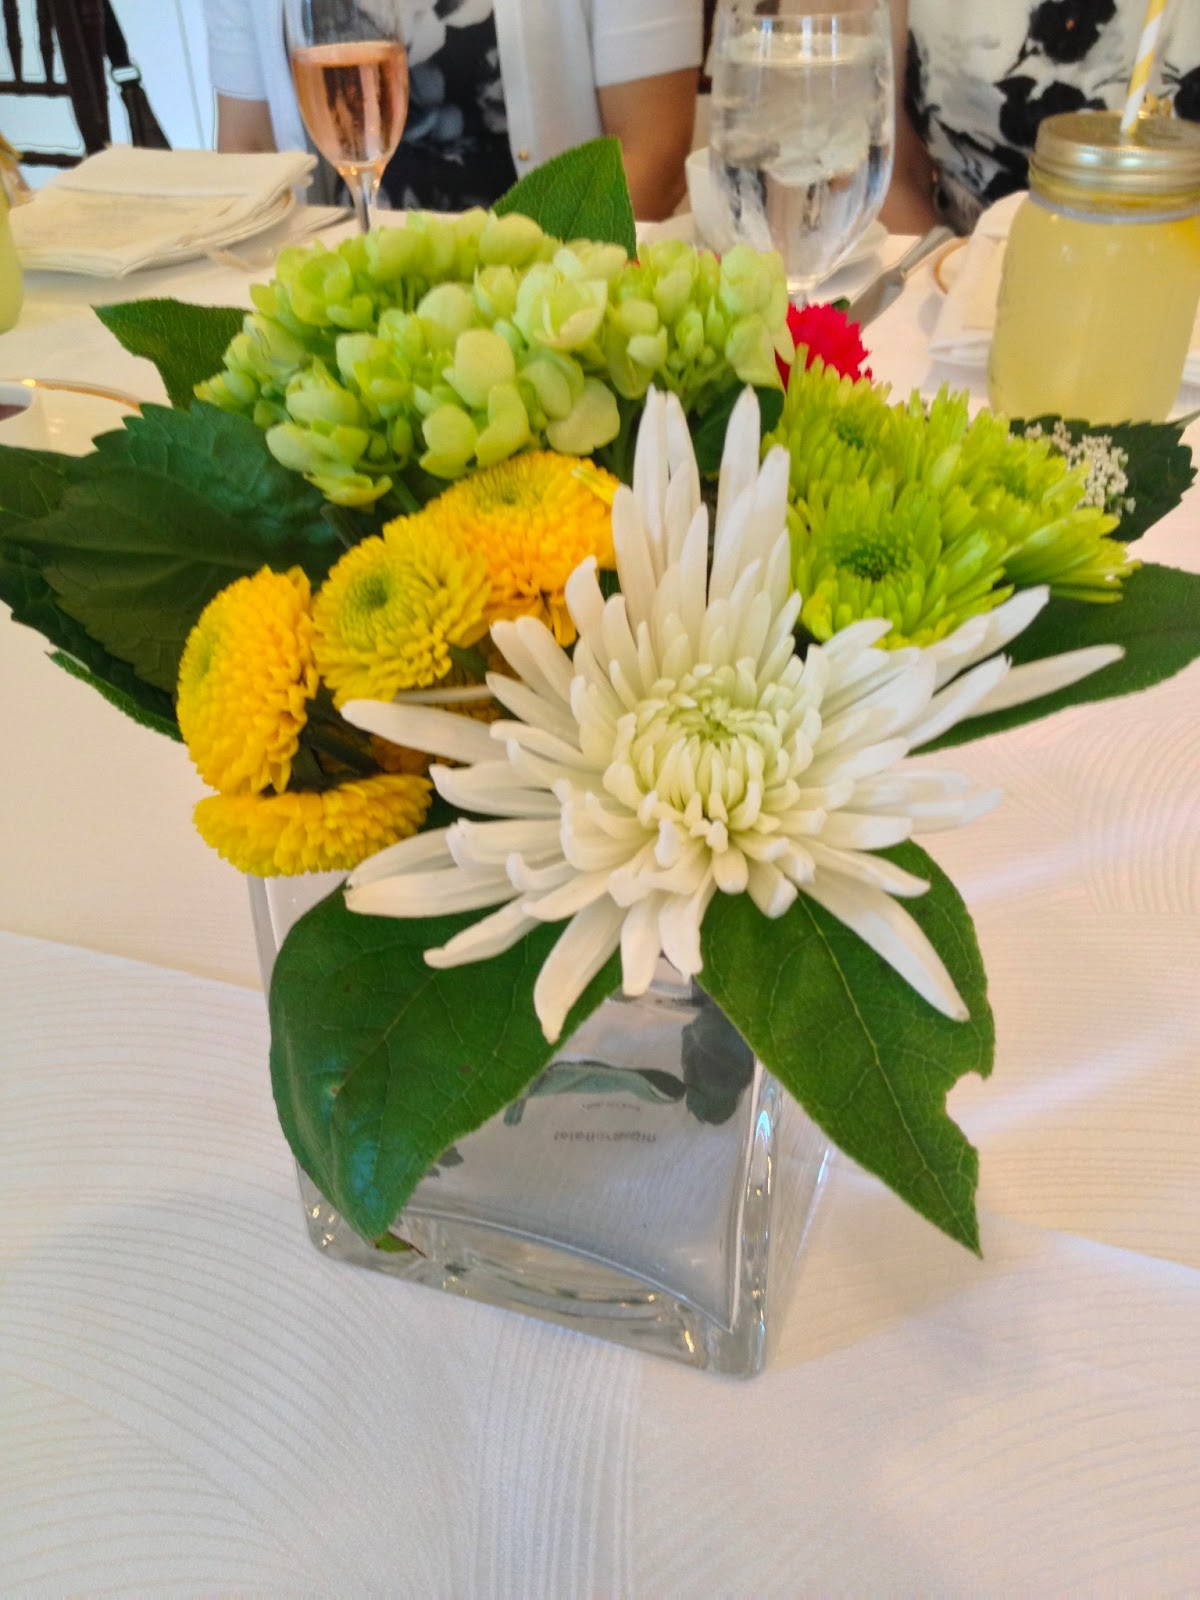 Costco Flowers Wedding 77 Inspirational Flowers are always a